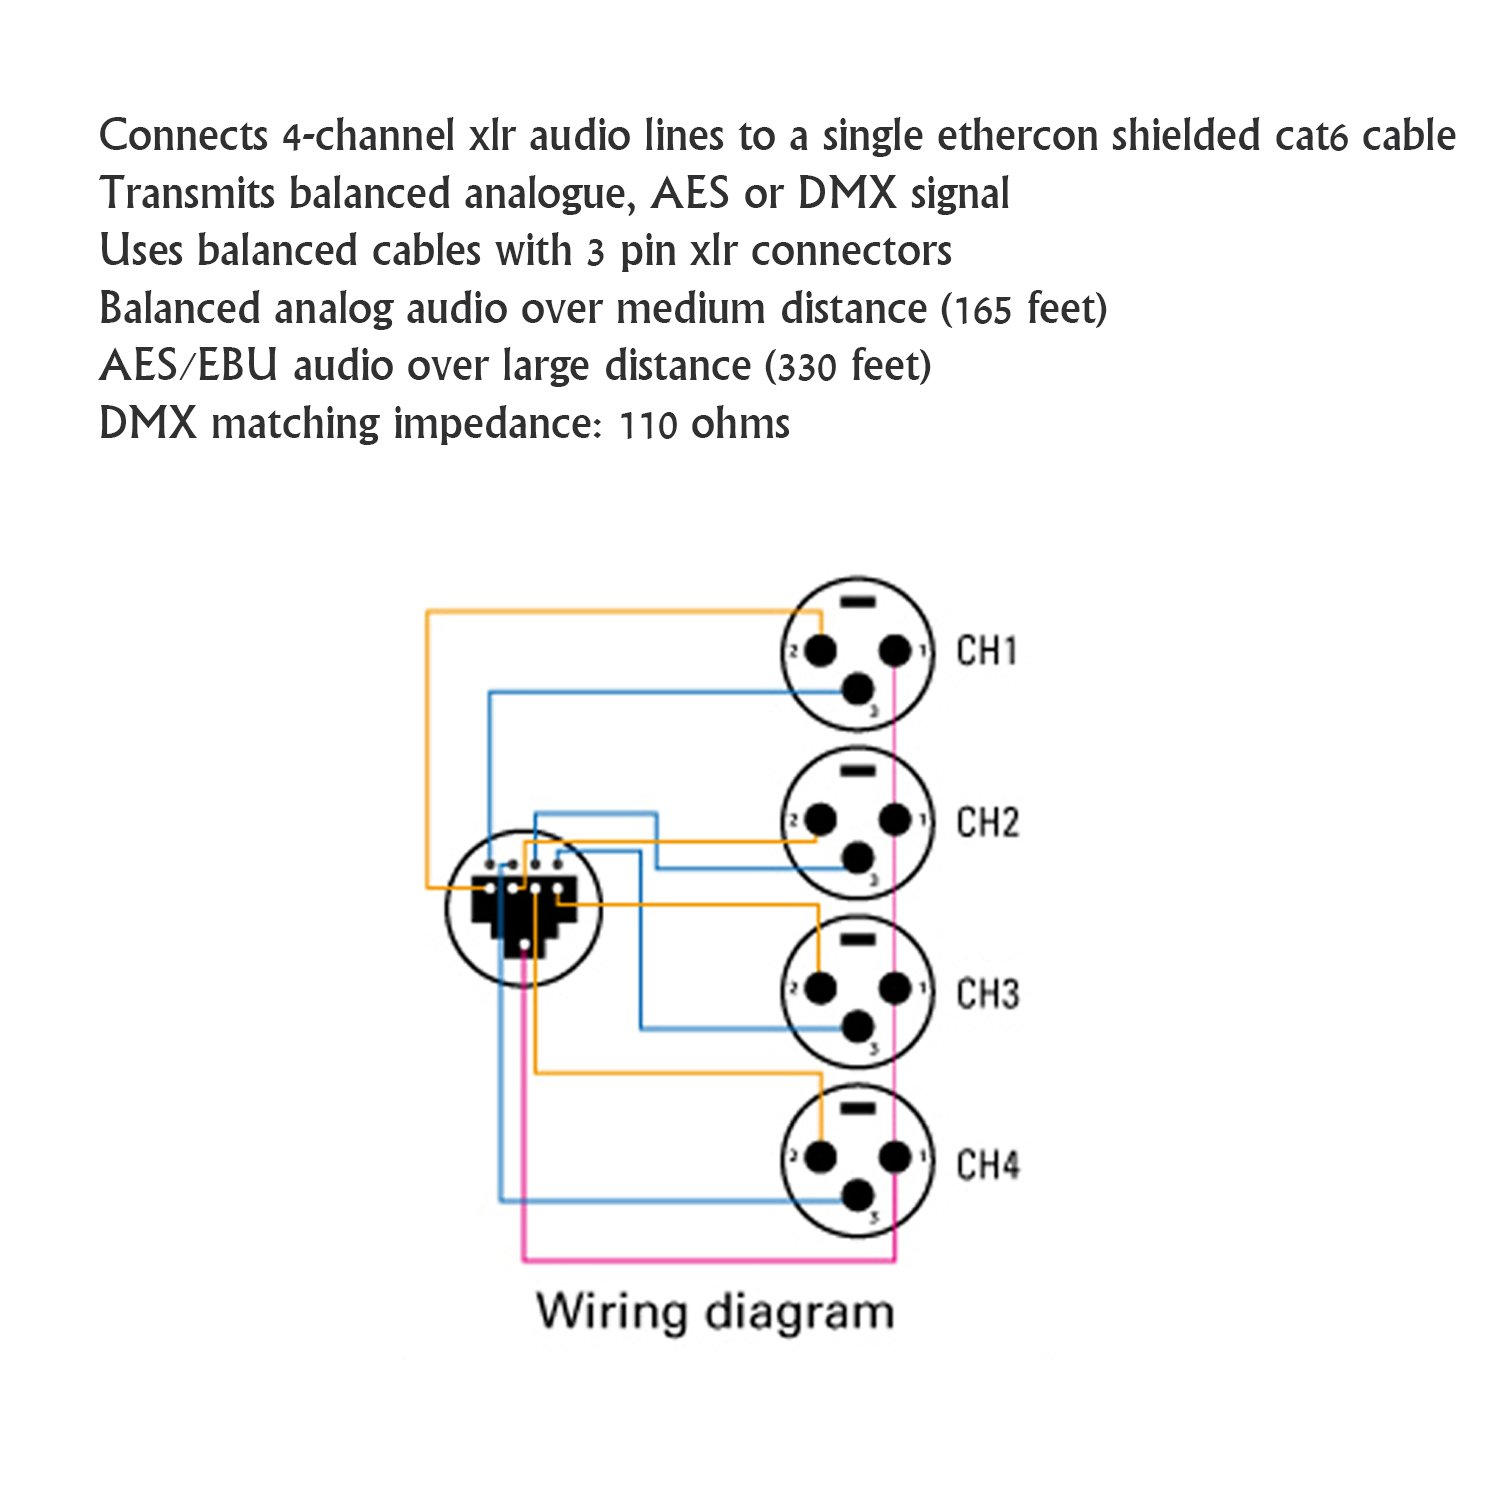 Xlr Wiring Diagram Lable - 4.9.asyaunited.de • on lucerne wiring diagram, ml wiring diagram, regal wiring diagram, power wiring diagram, model wiring diagram, flagstaff wiring diagram, vibe wiring diagram, speaker wiring diagram, cts v wiring diagram, dmx led controller wiring diagram, trs cable wiring diagram, raptor wiring diagram, yukon wiring diagram, wildcat wiring diagram, 3-pin mic wiring diagram, xts wiring diagram, challenger wiring diagram, g6 wiring diagram, work and play wiring diagram, cyclone wiring diagram,